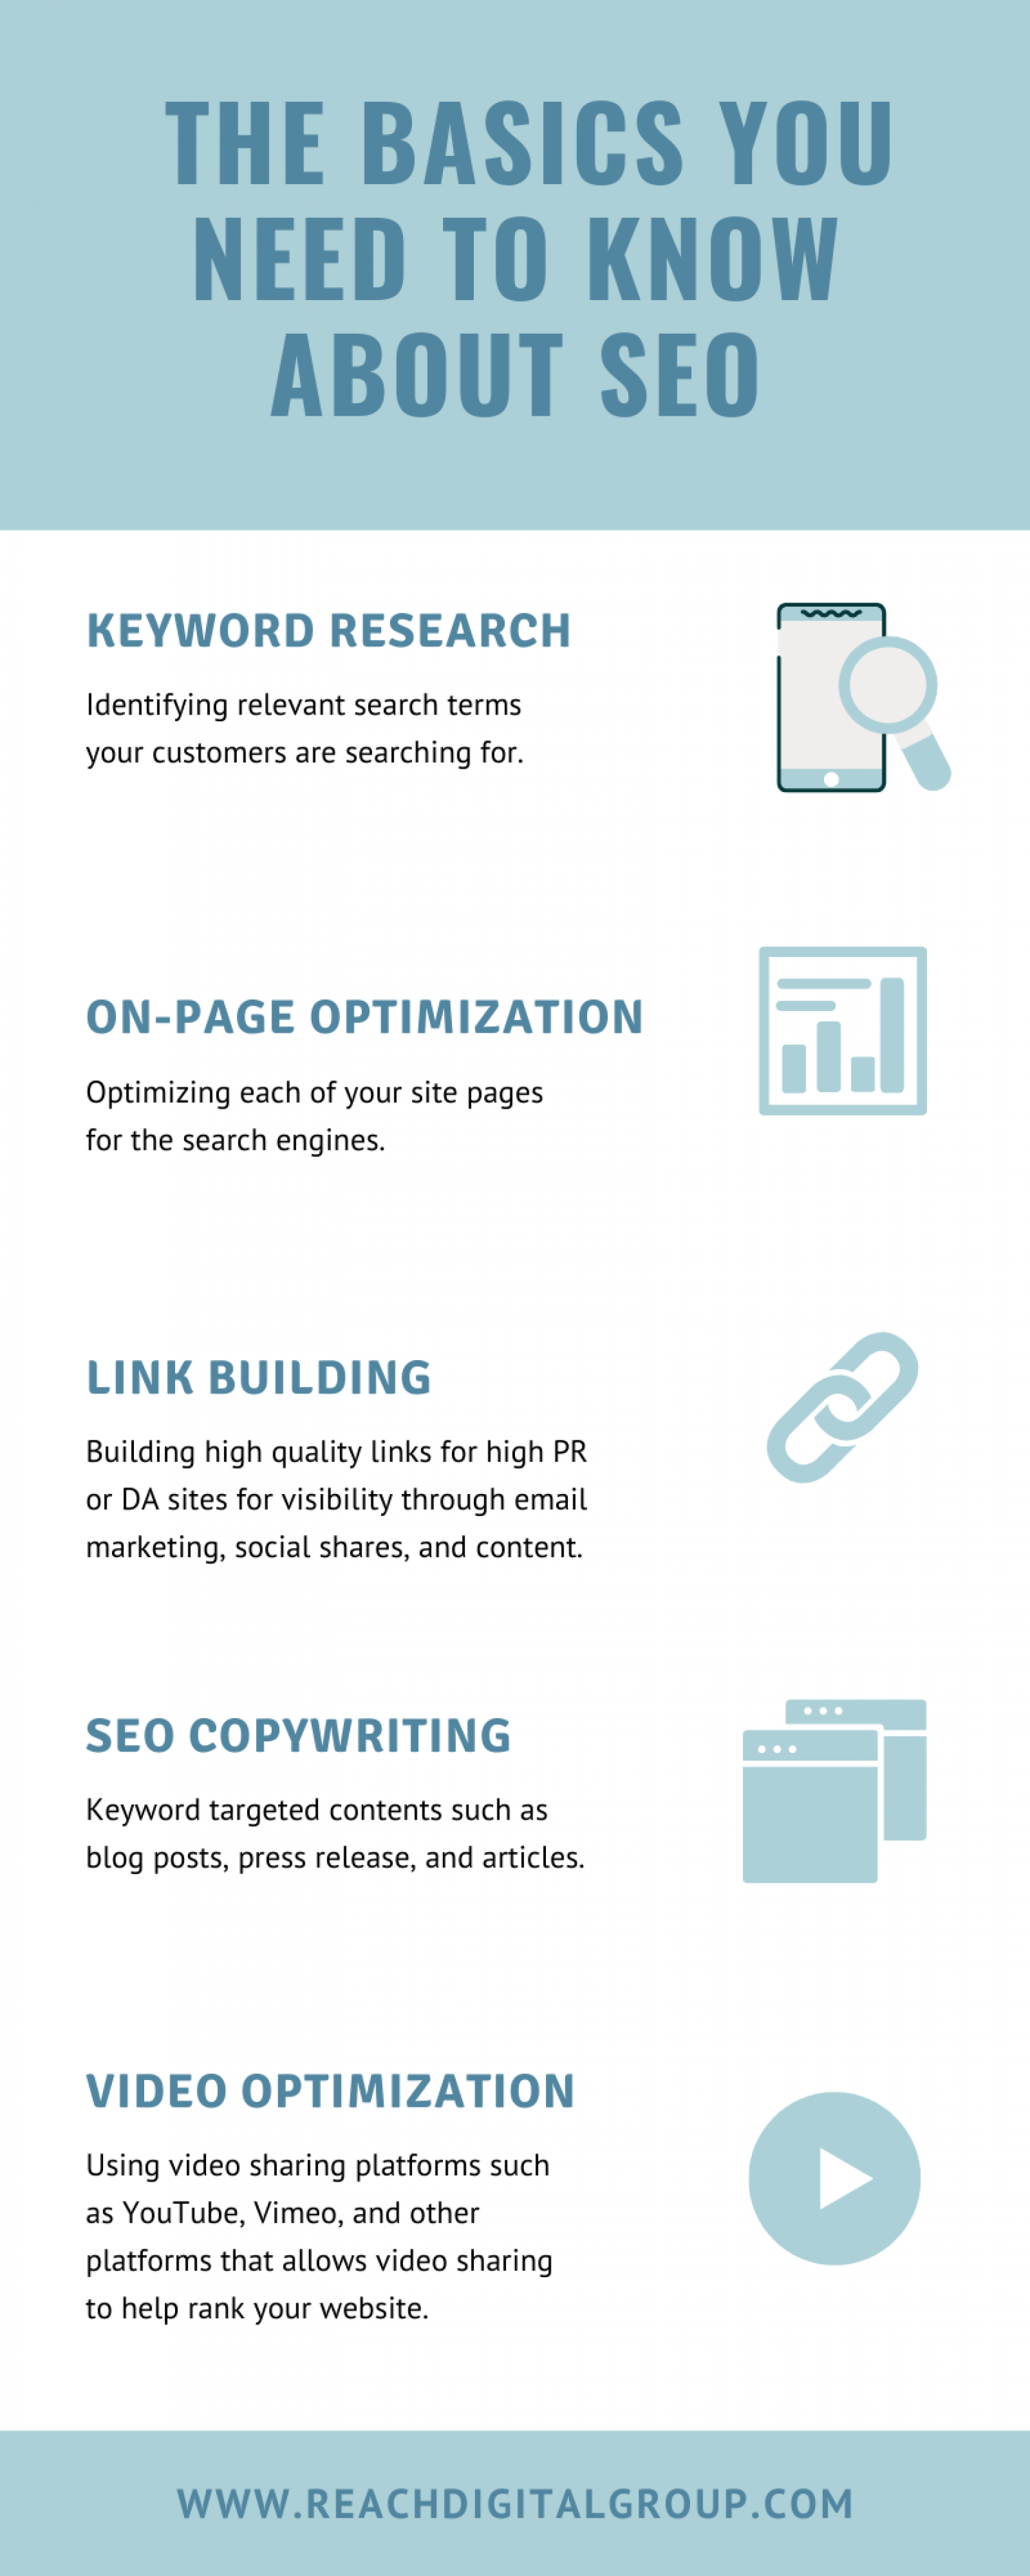 The Basics You Need To Know About SEO Infographic